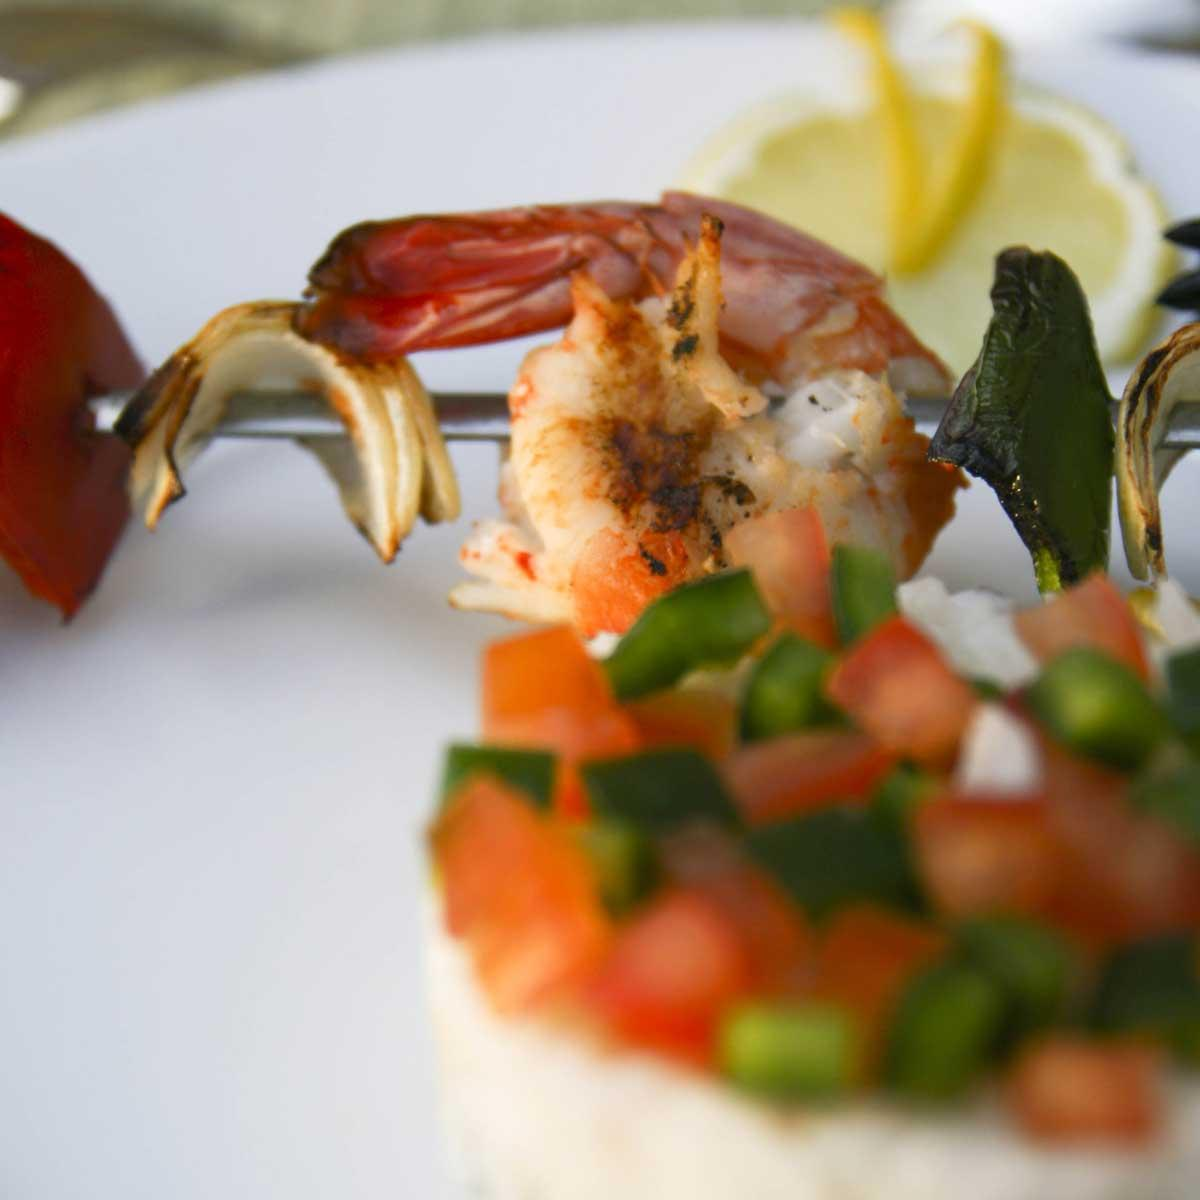 Recette brochettes de gambas grill es tandoori cuisine - Accompagnement gambas grillees ...